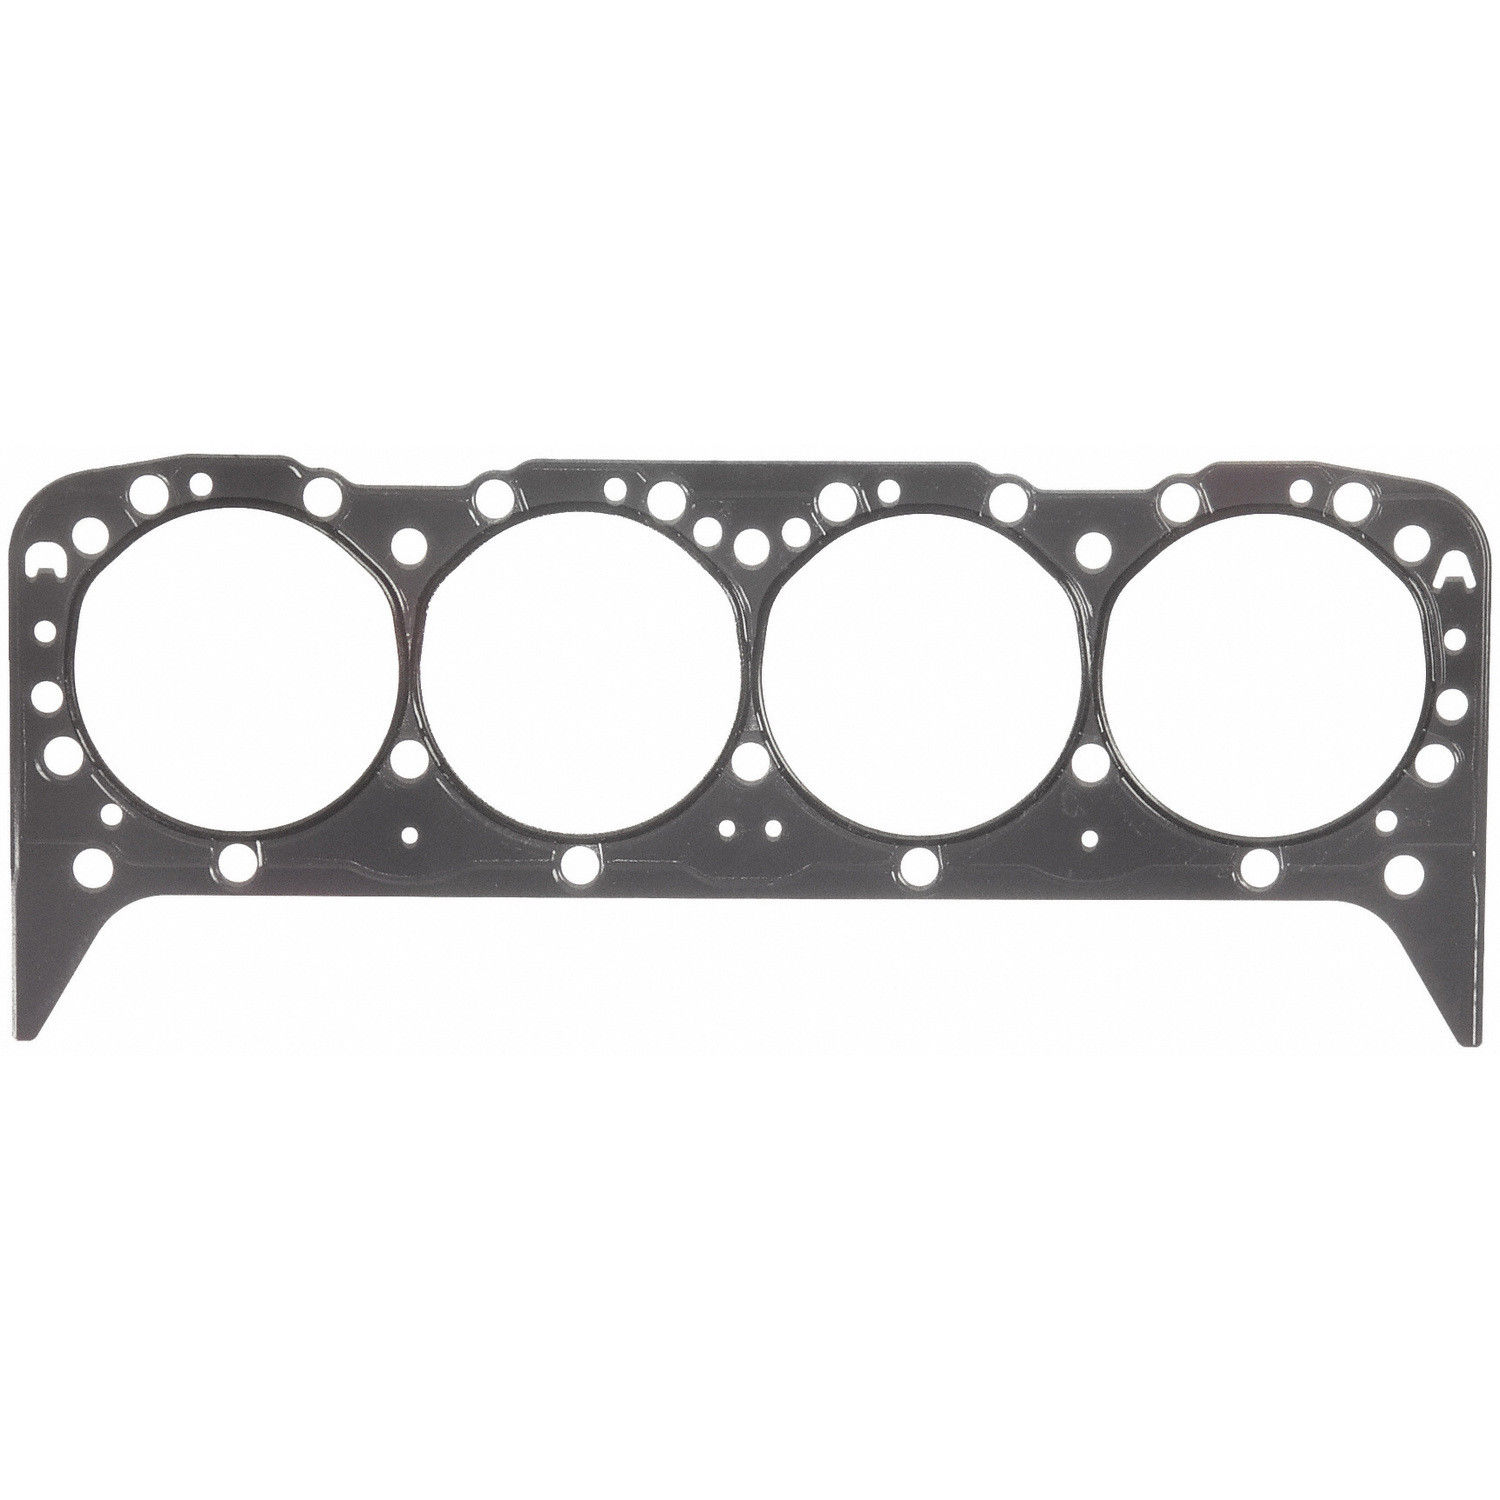 Fel-Pro 1094 SBC Chevy Head Gasket Stainless Steel Shim EACH 4.100